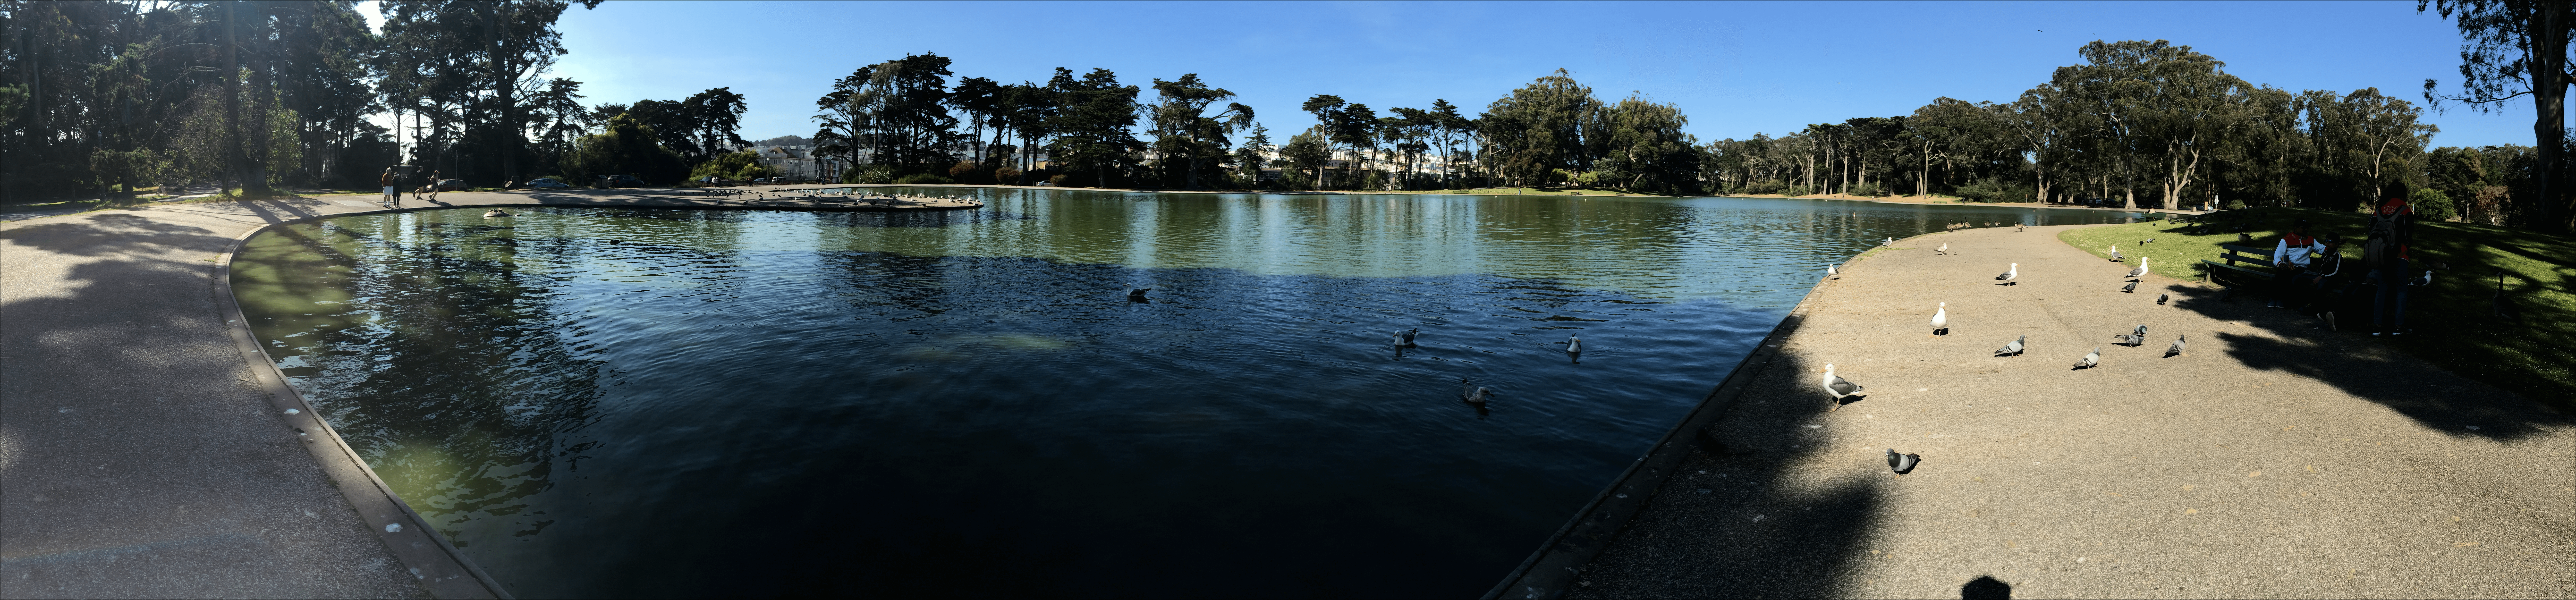 Teich im Golden Gate Park